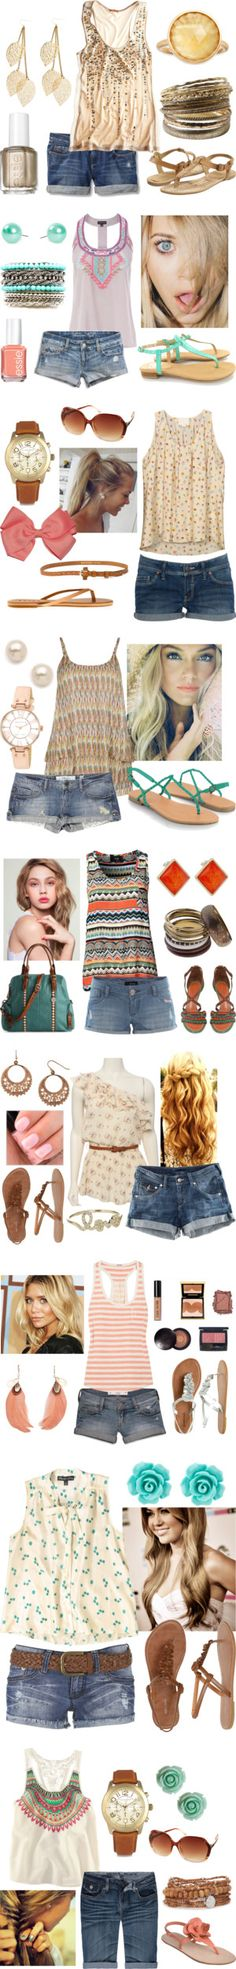 """""""Sweet Summertime"""" by qtpiekelso on Polyvore. Hopefully we get enough of a summer this year that I can use some of these!"""